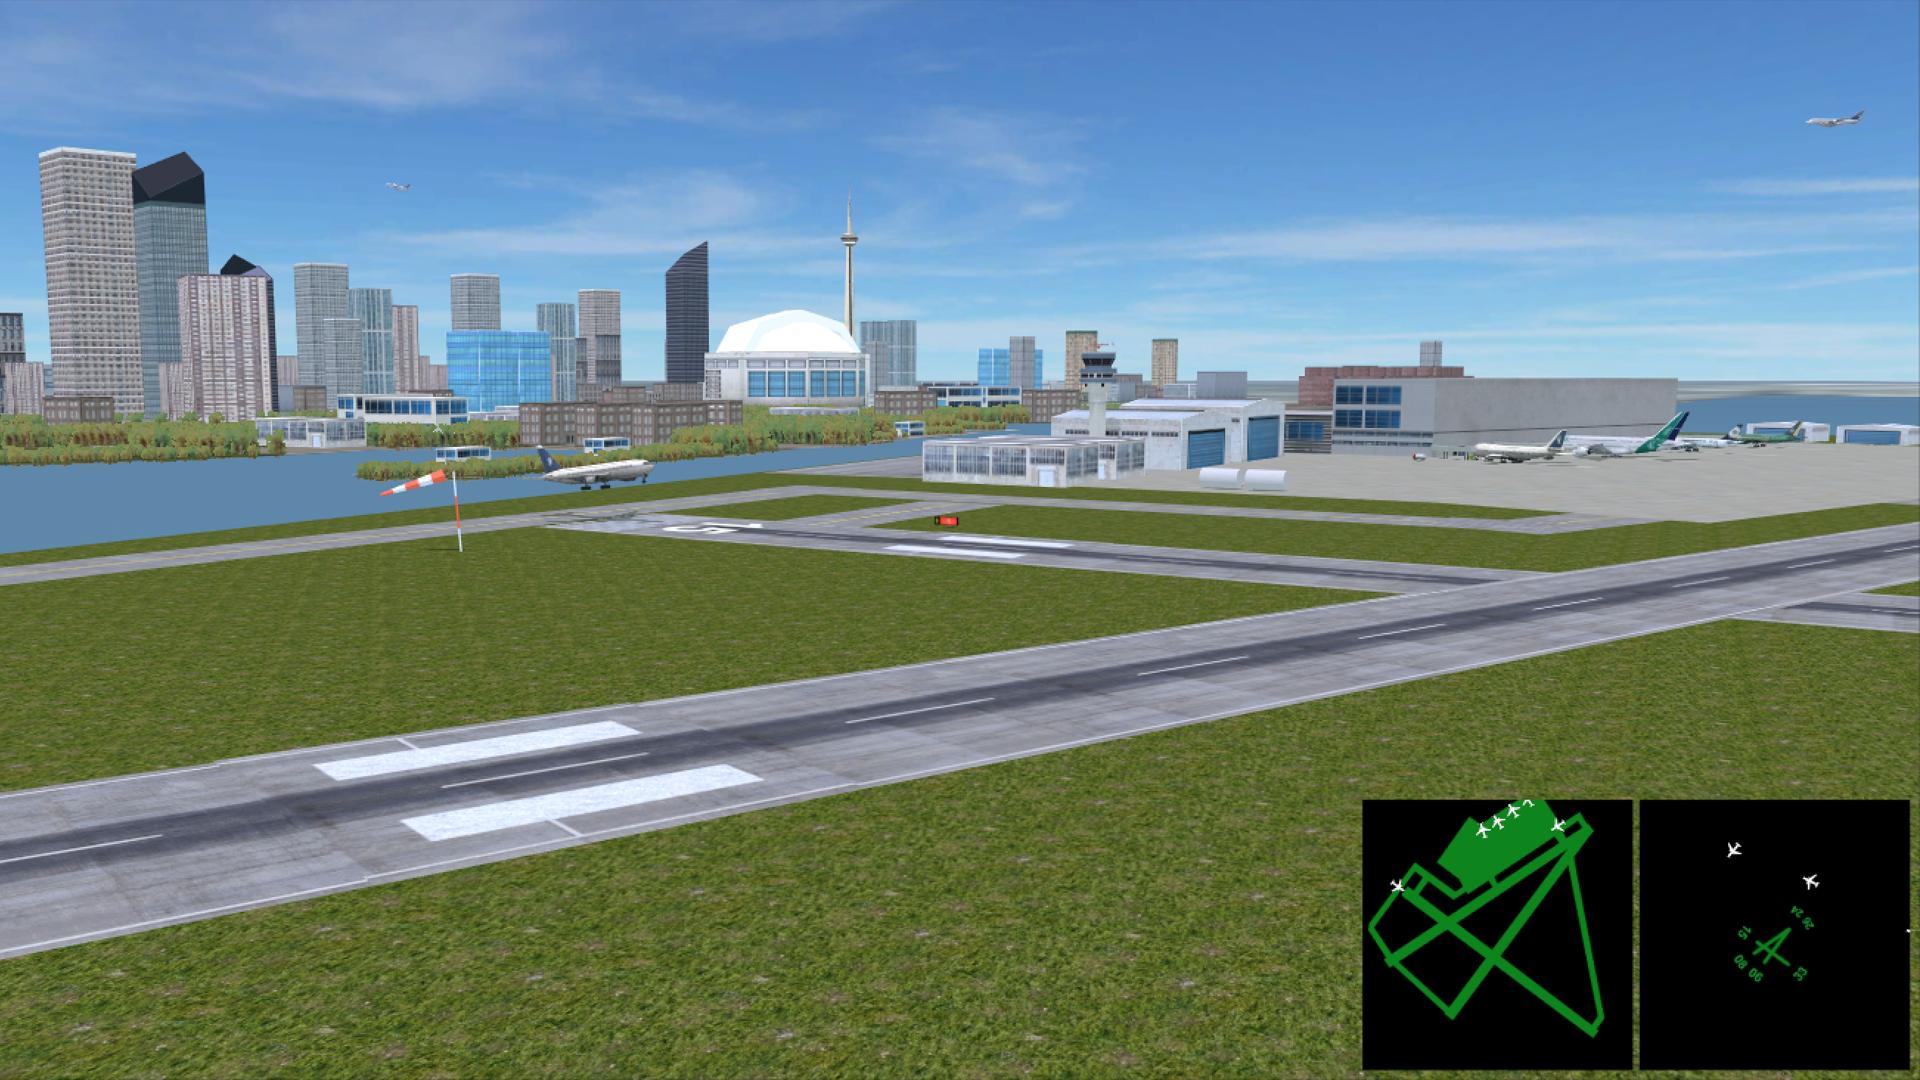 Airport madness 4 free download full version macinstmank podcast.